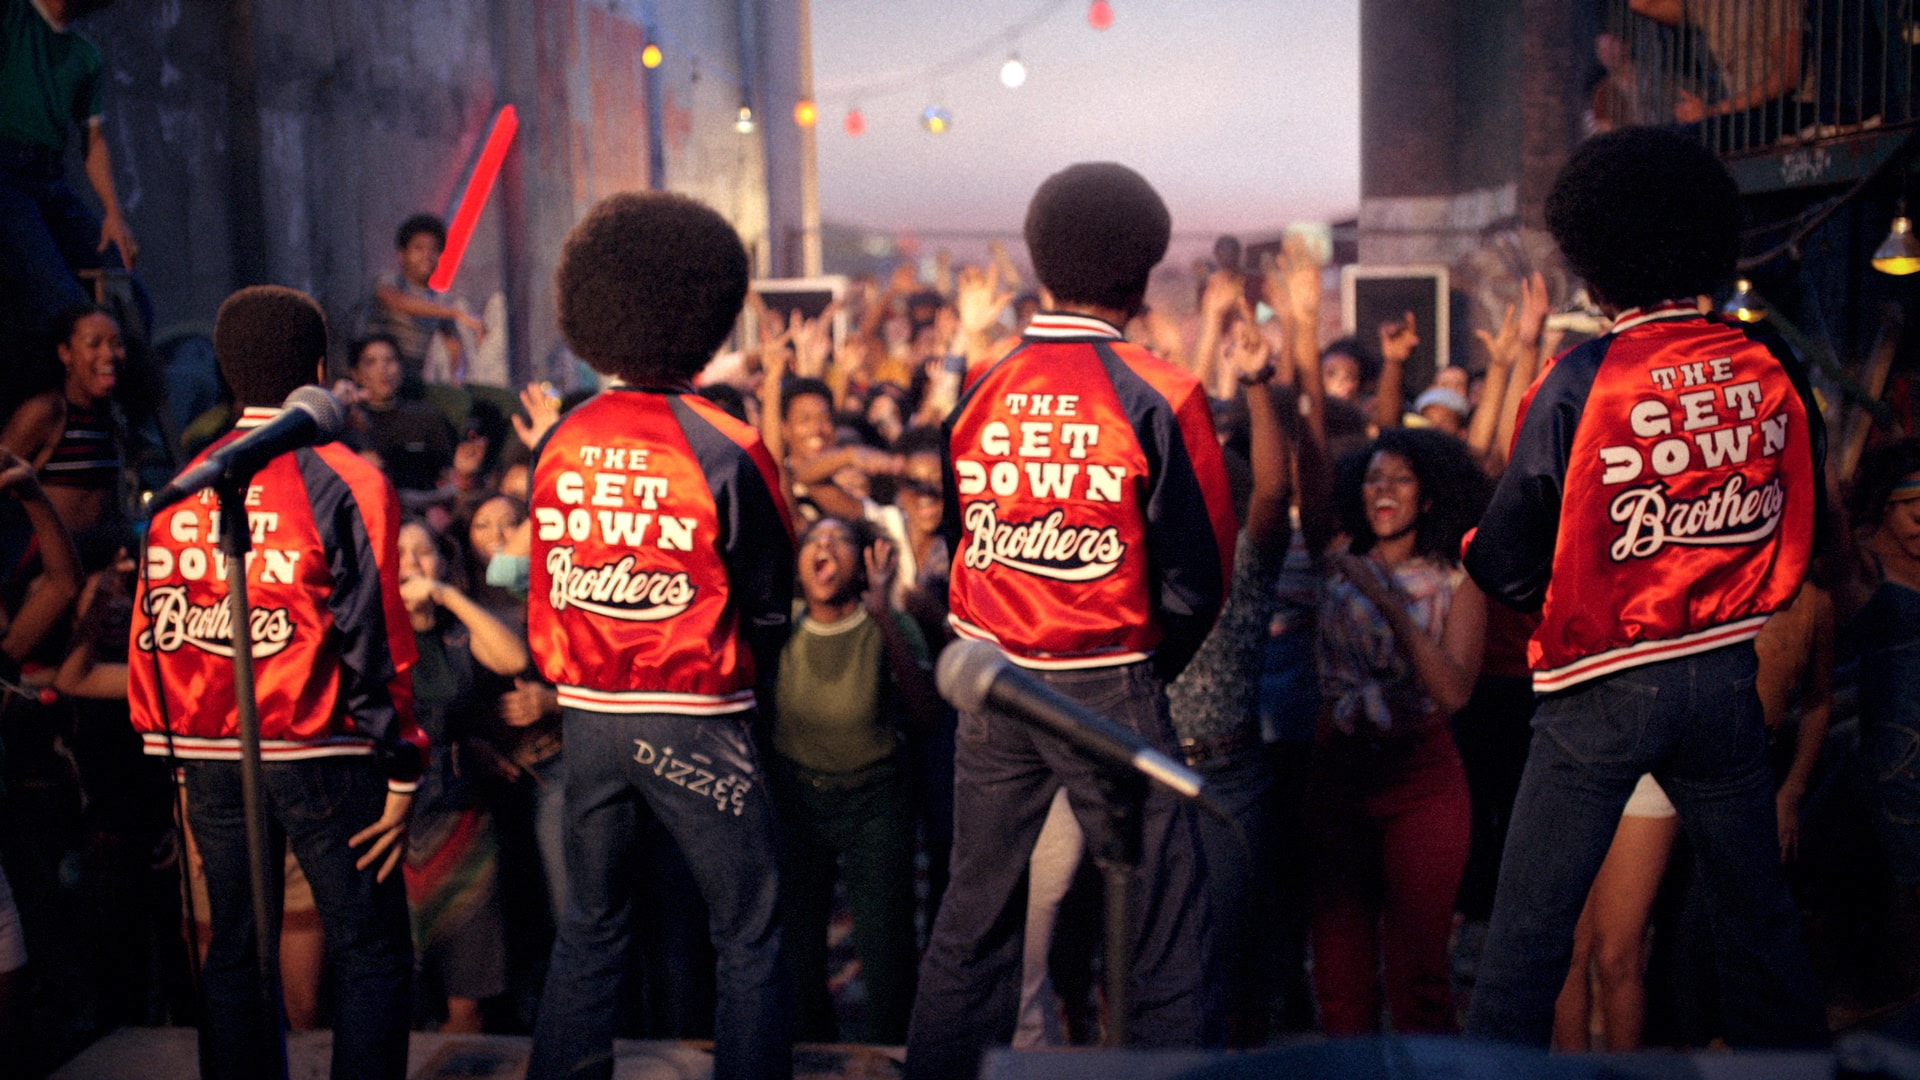 The Get Down 2-min